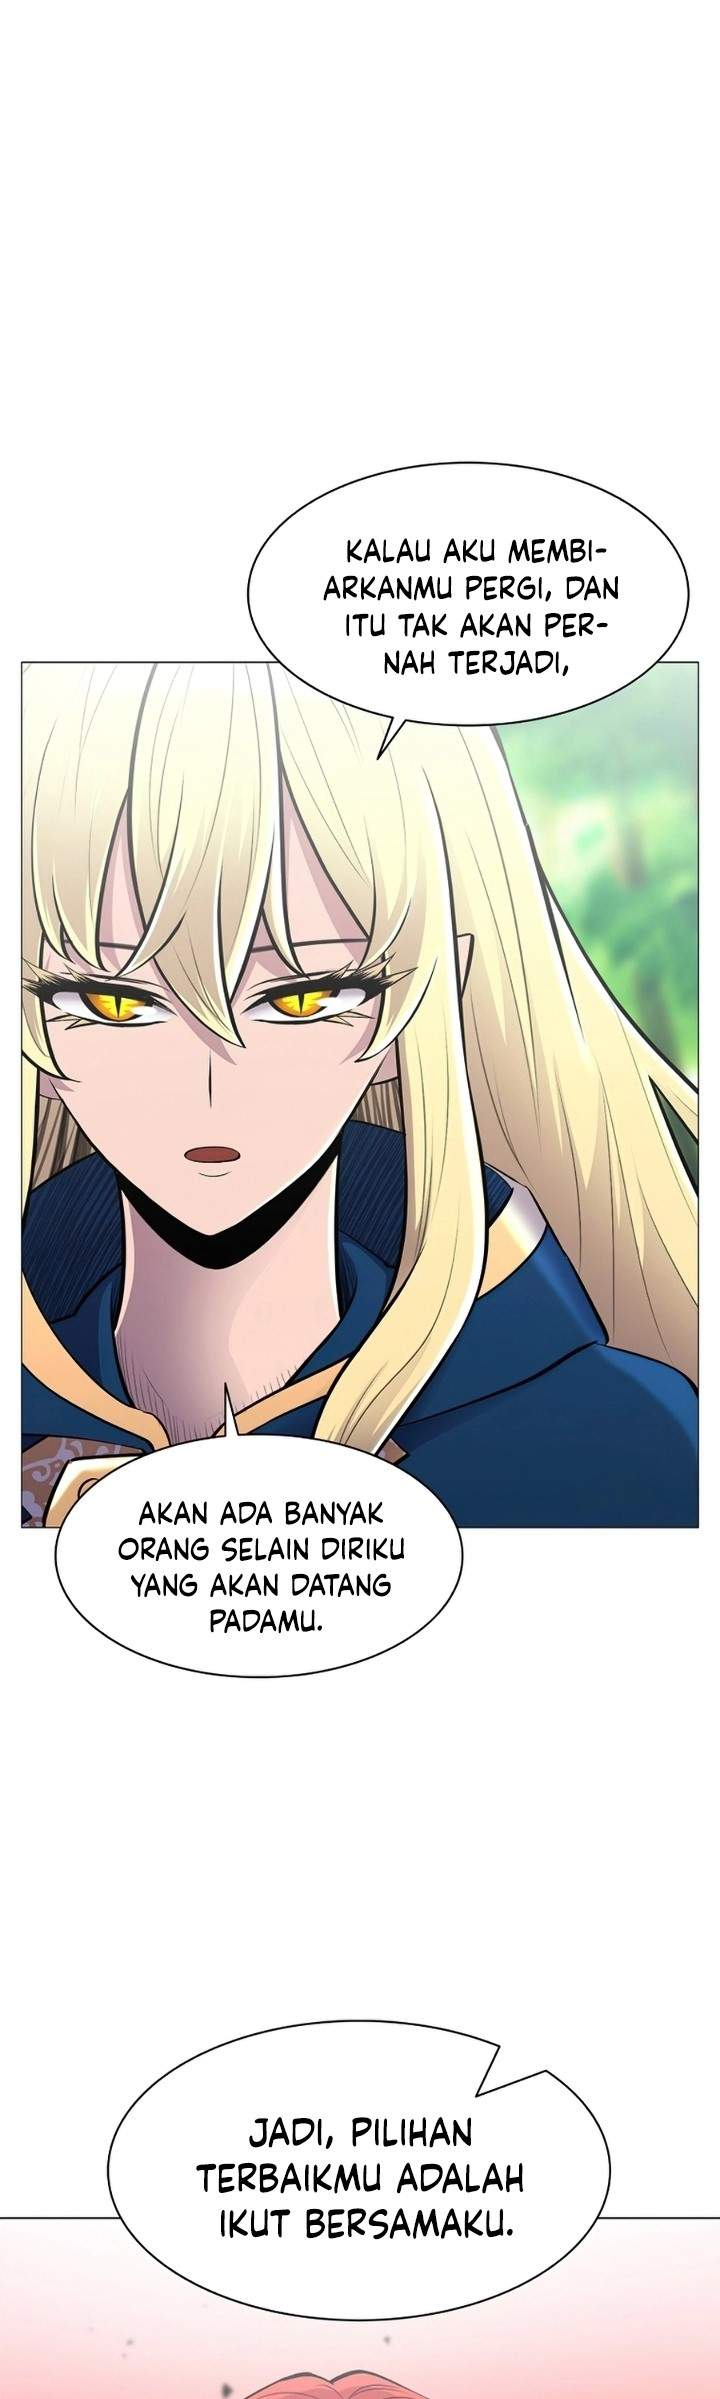 Updater Chapter 47